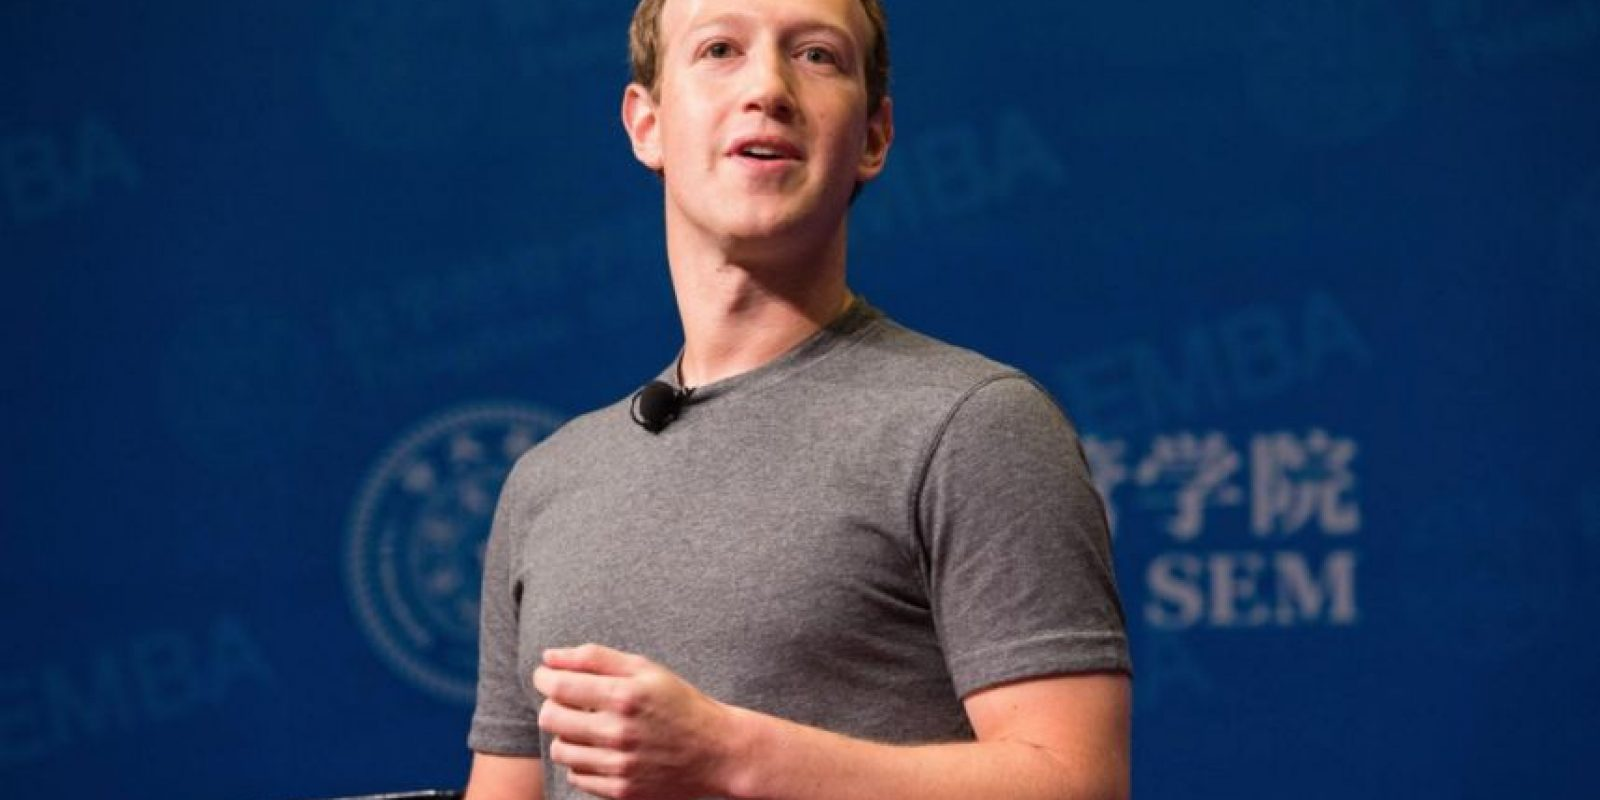 Les mostramos las curiosidades de Mark Zuckerberg, el CEO de Facebook. Foto: Getty Images